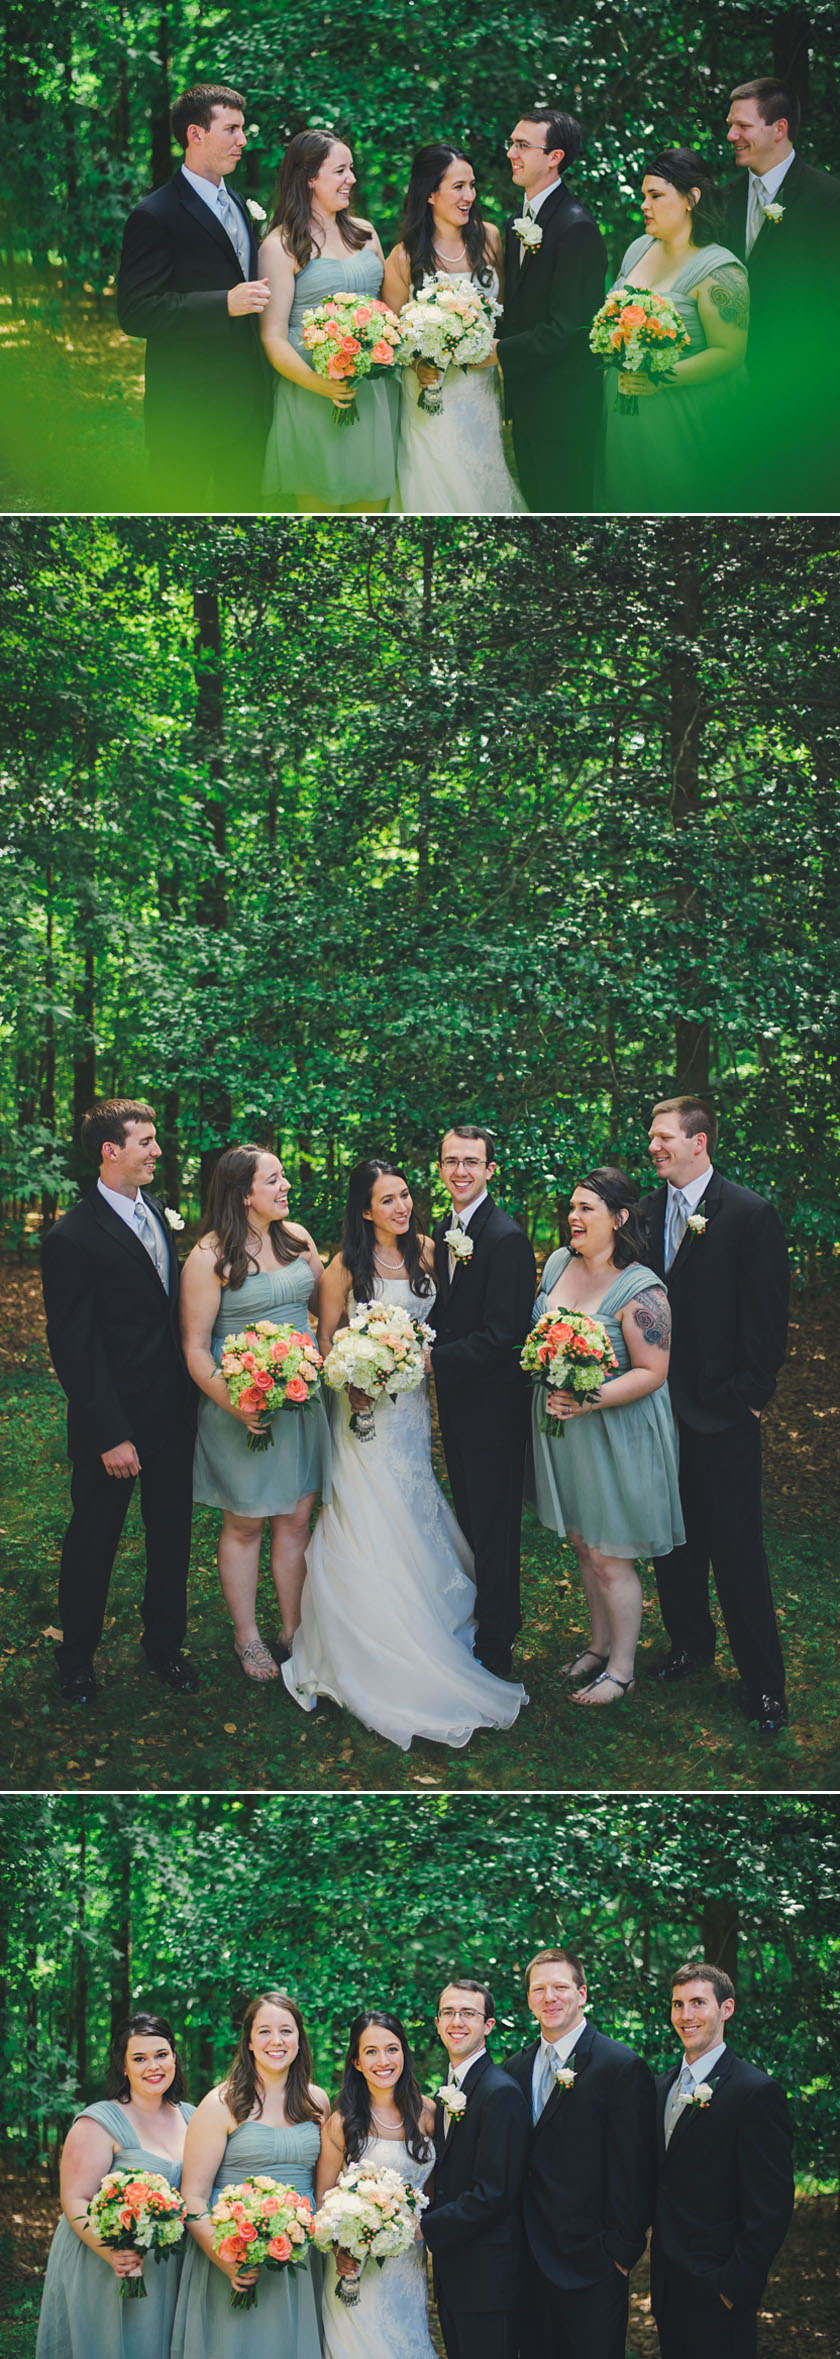 Connectiopn_Photography_Raleigh_NC_Wedding_Photographer_17